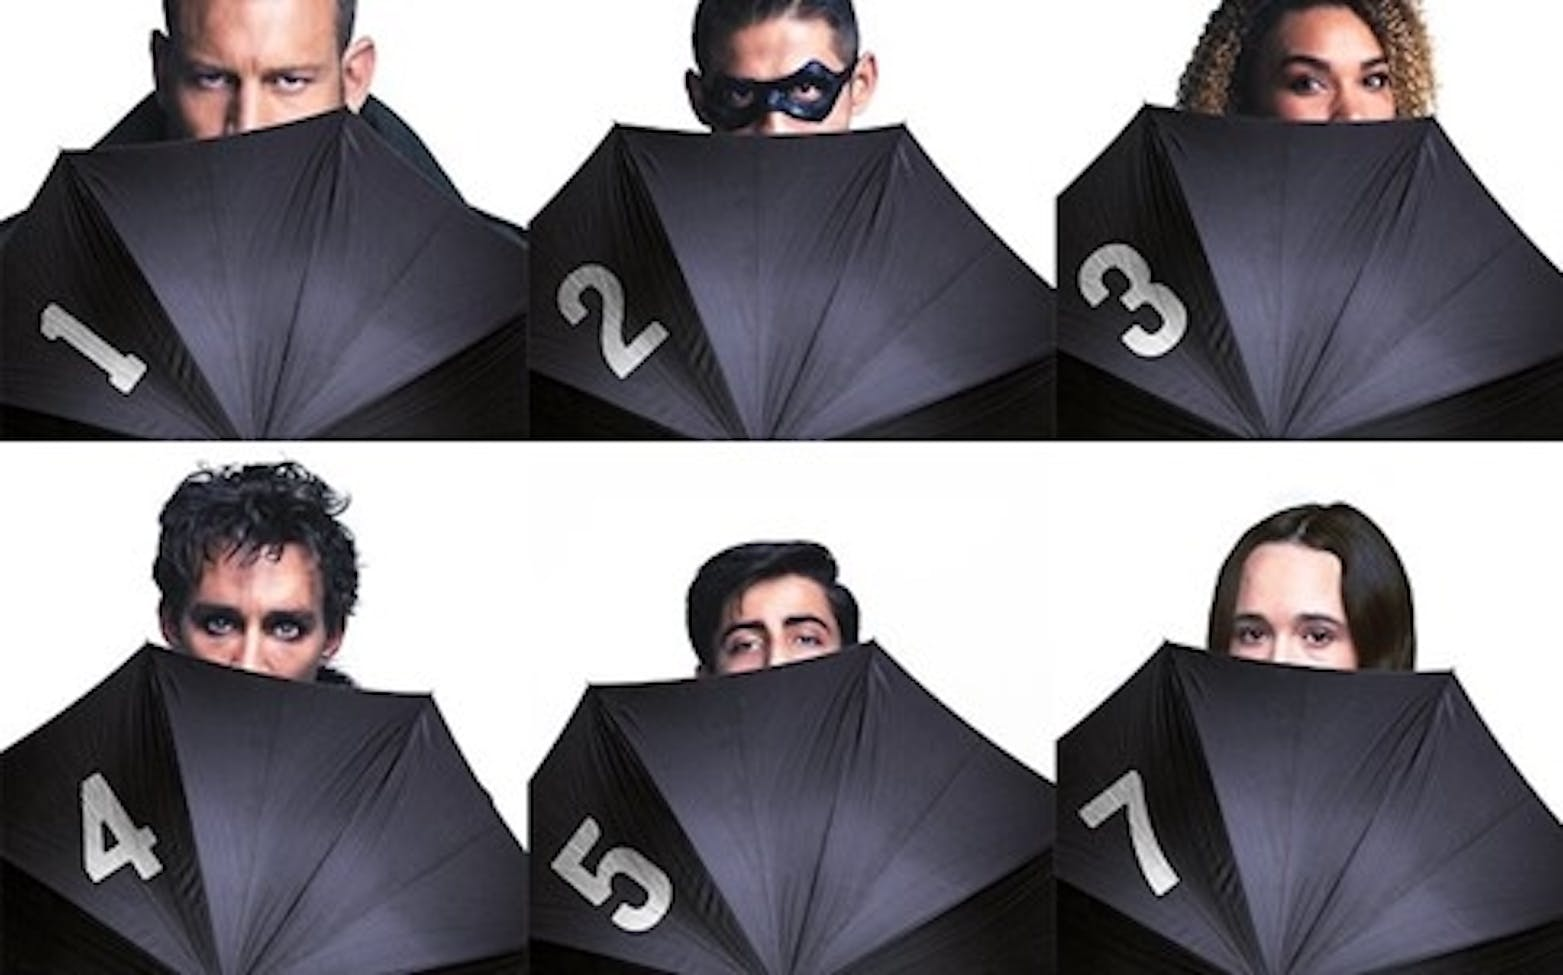 Netflix Original: The Umbrella Academy